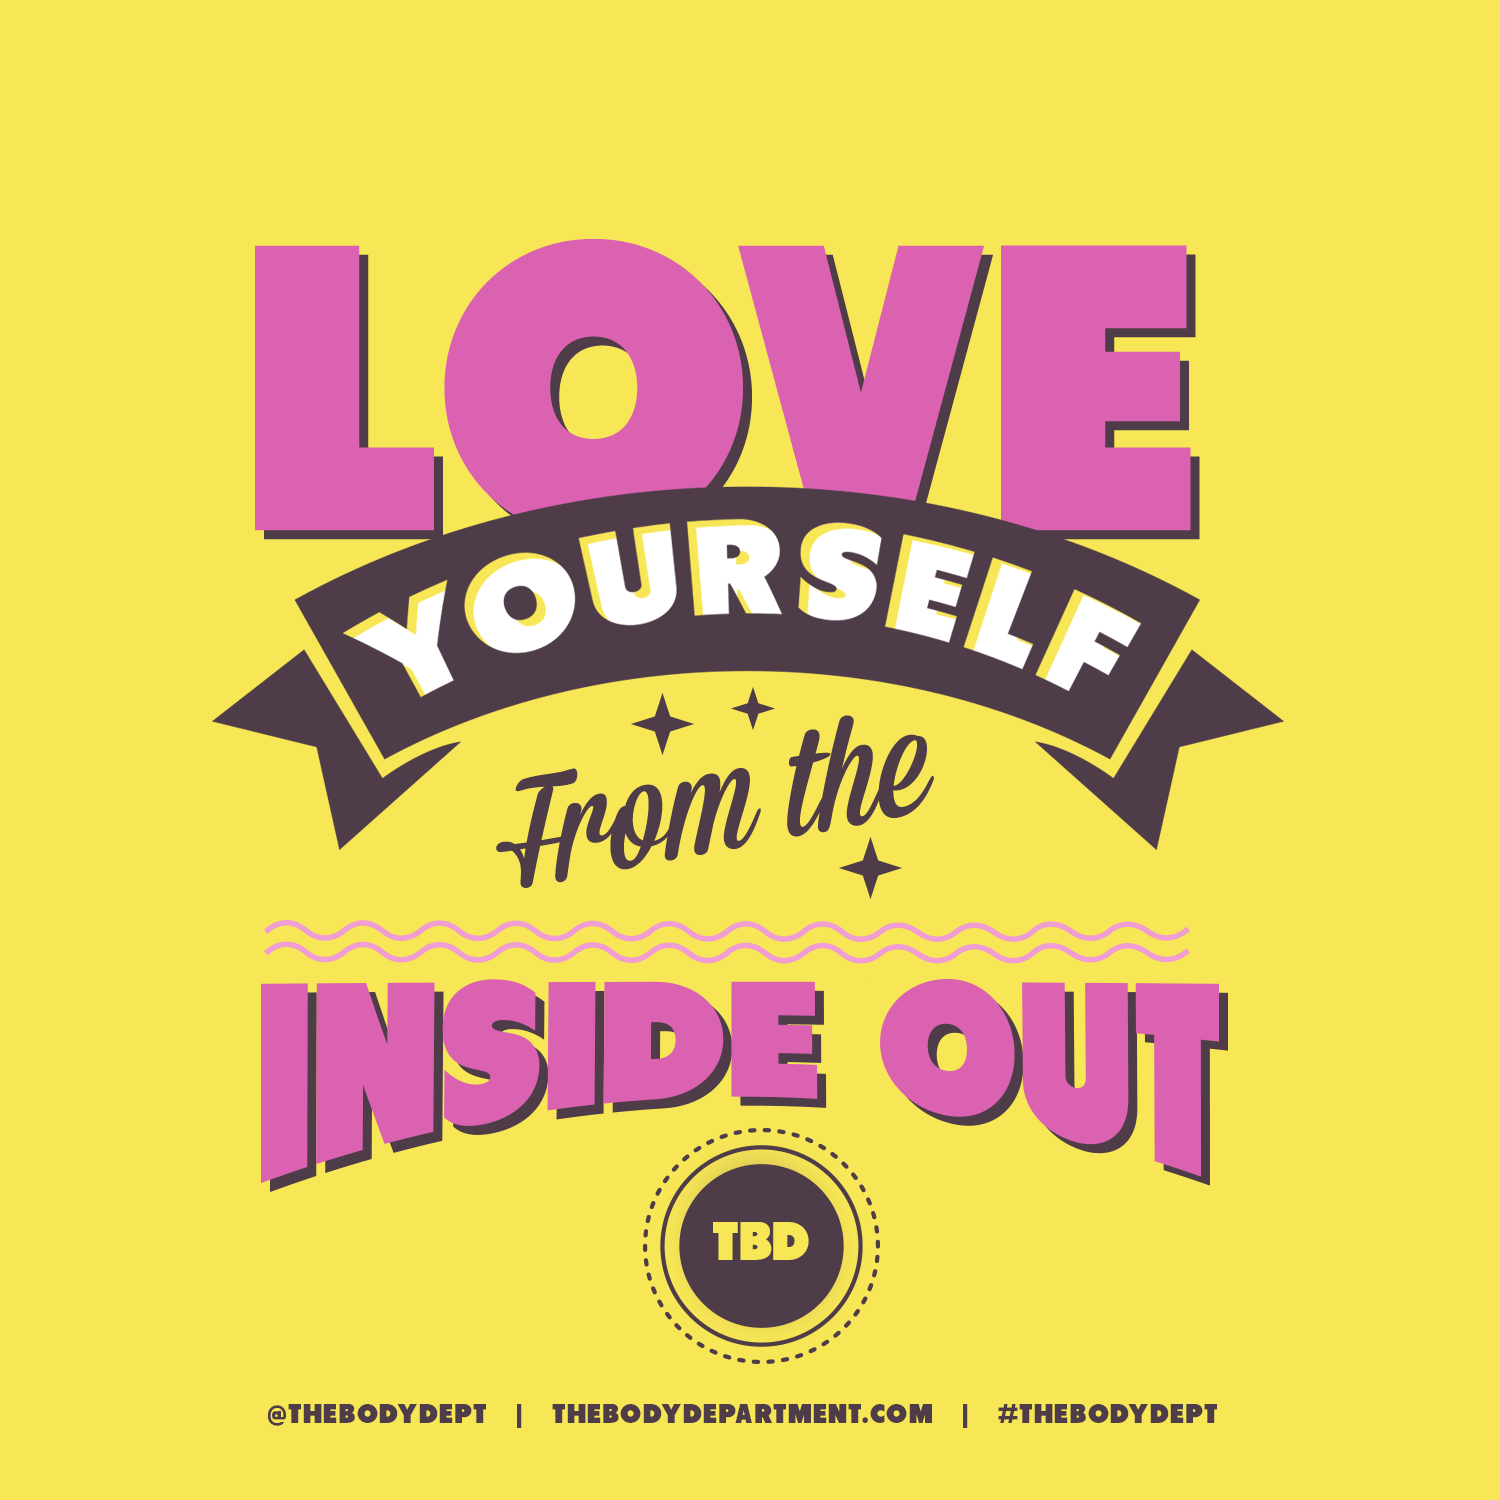 Shawn Johnson's The Body Department - Fitspiration: Love Yourself